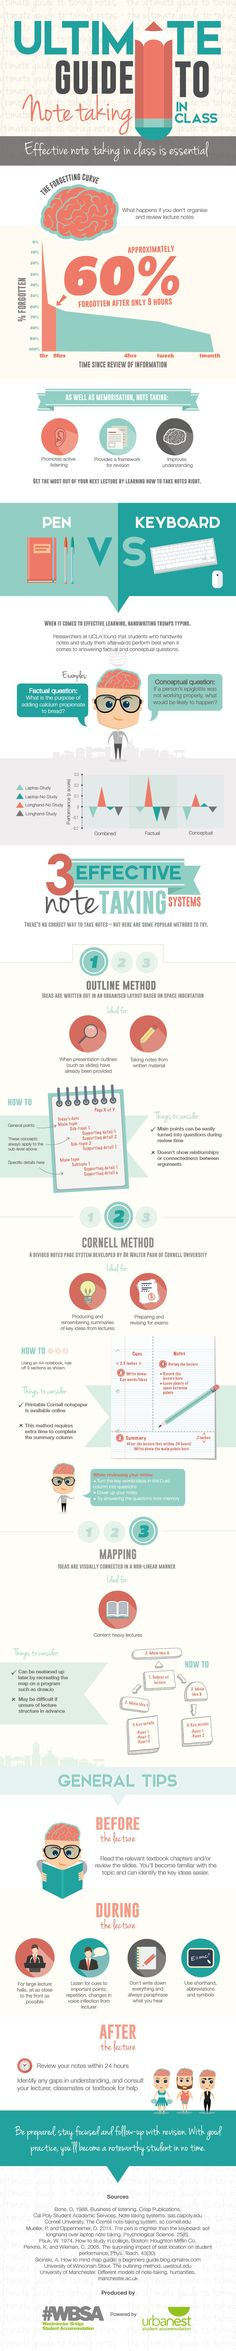 The Ultimate Guide to Note Taking in Class #infographic #Education #NoteTaking